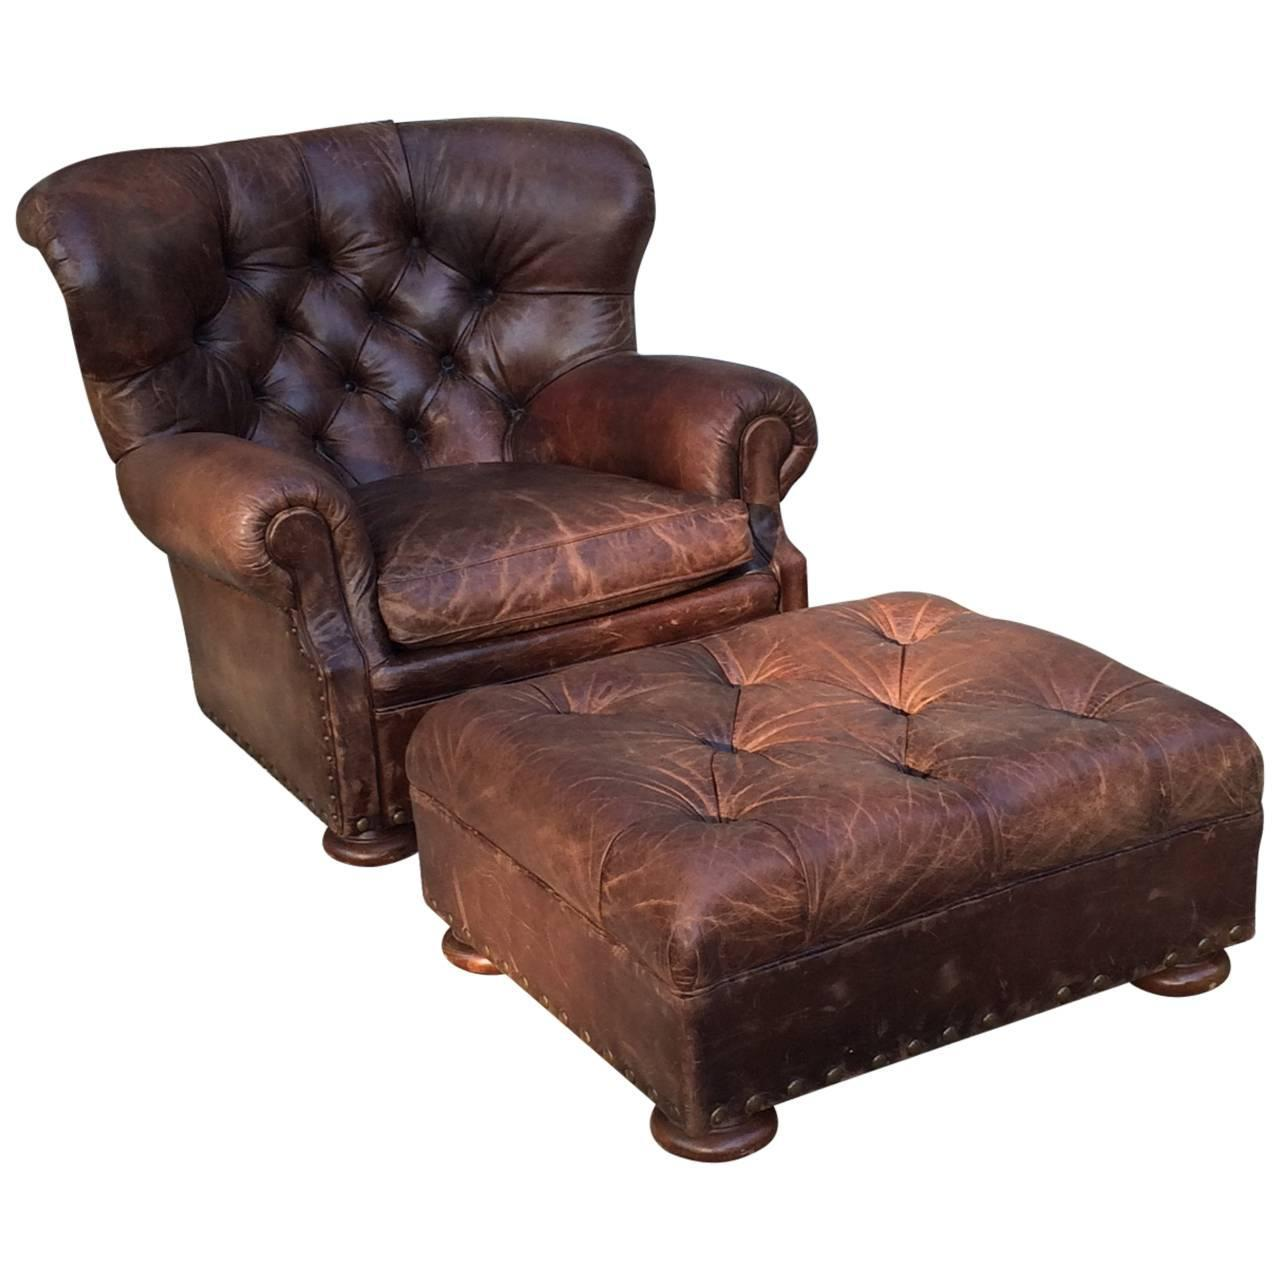 Handsome Large Ralph Lauren On Tufted Club Chair And Ottoman At 1stdibs